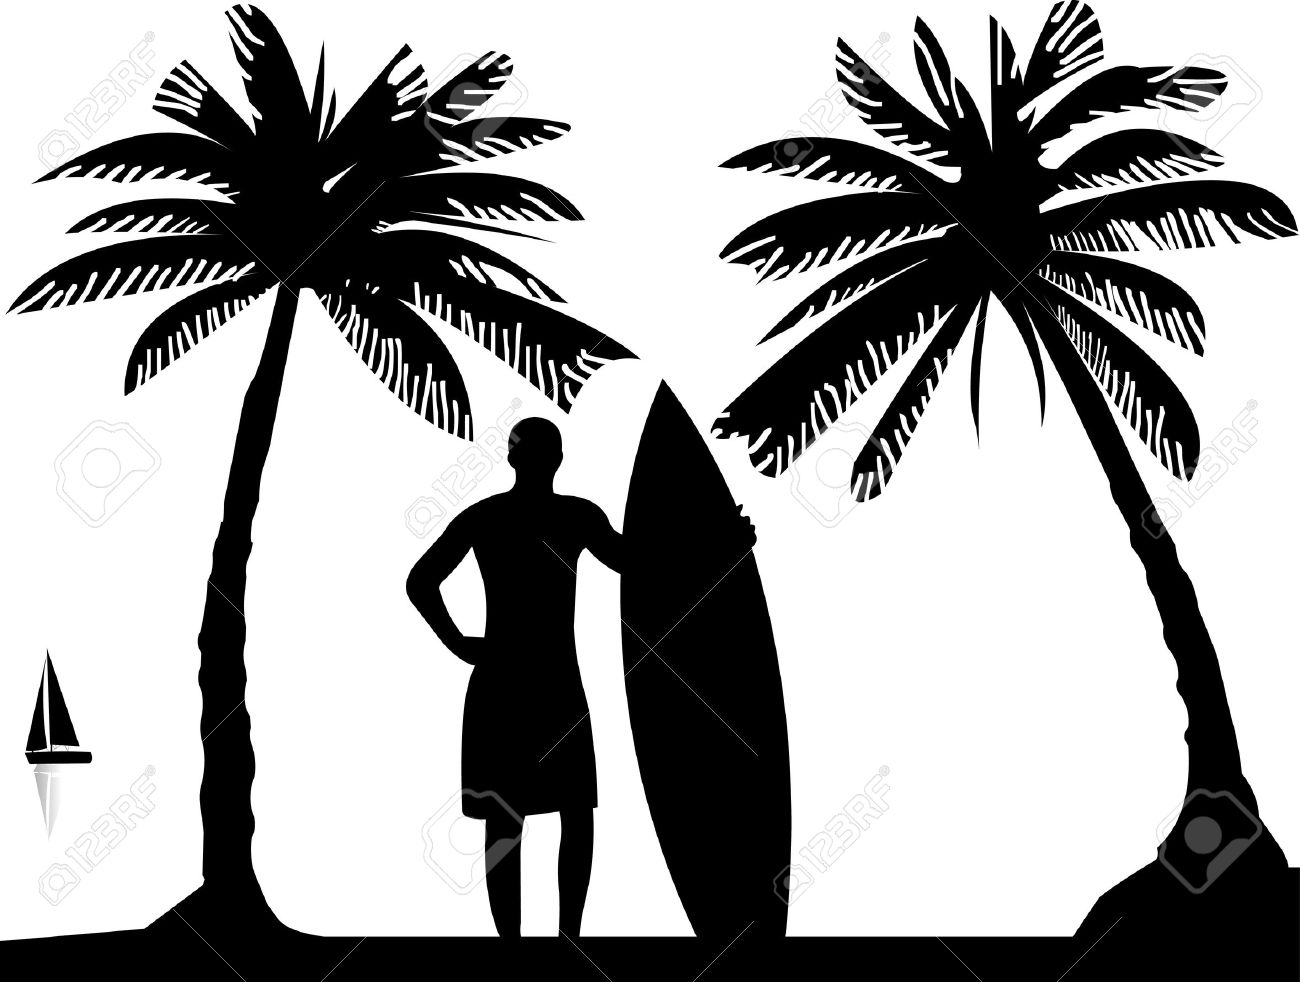 Surfboard clipart silhouette picture royalty free stock Silhouette boy surfboard clipart - ClipartFest picture royalty free stock